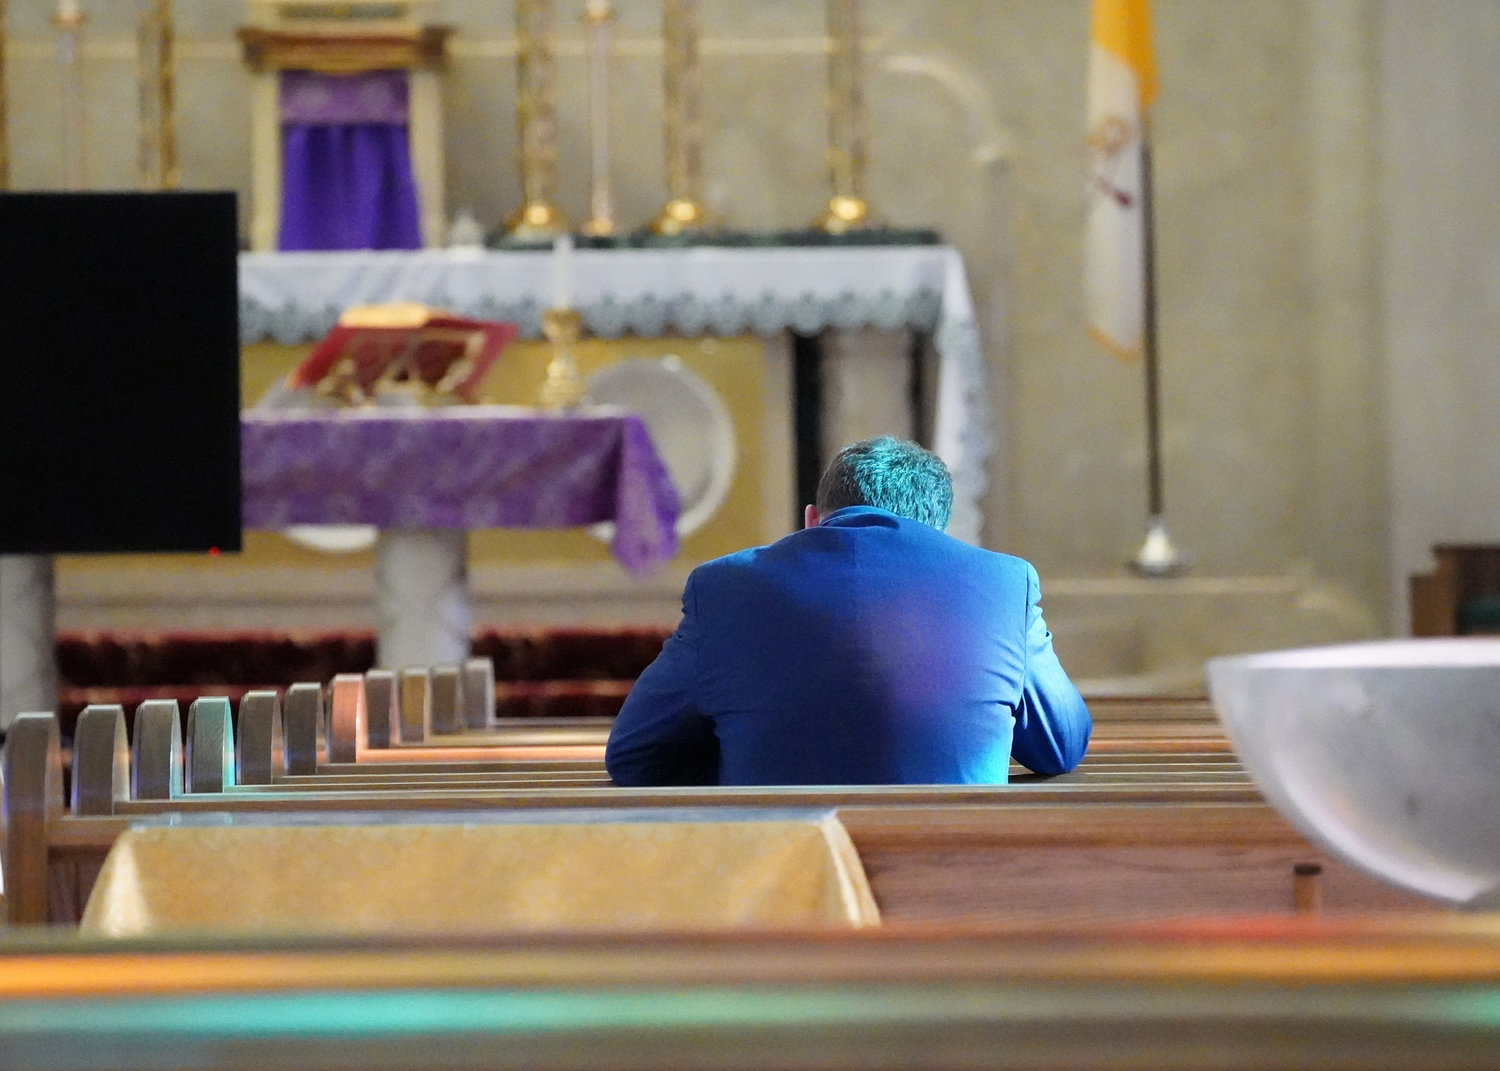 Church life is expected to reflect new practices when public Masses resume.